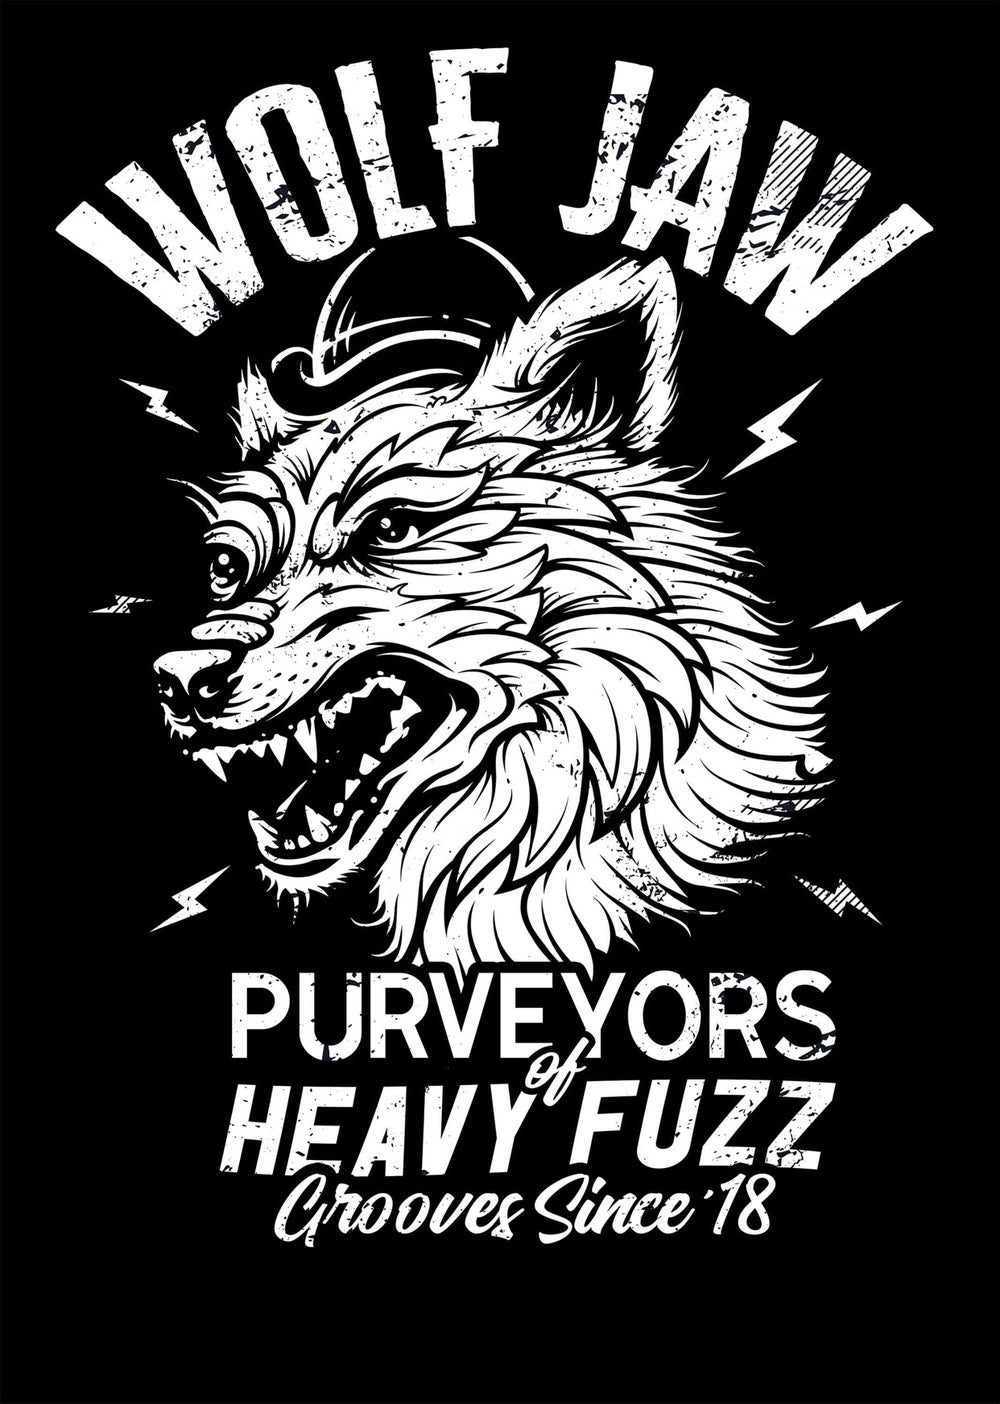 Heavy Fuzz Groove T-shirt